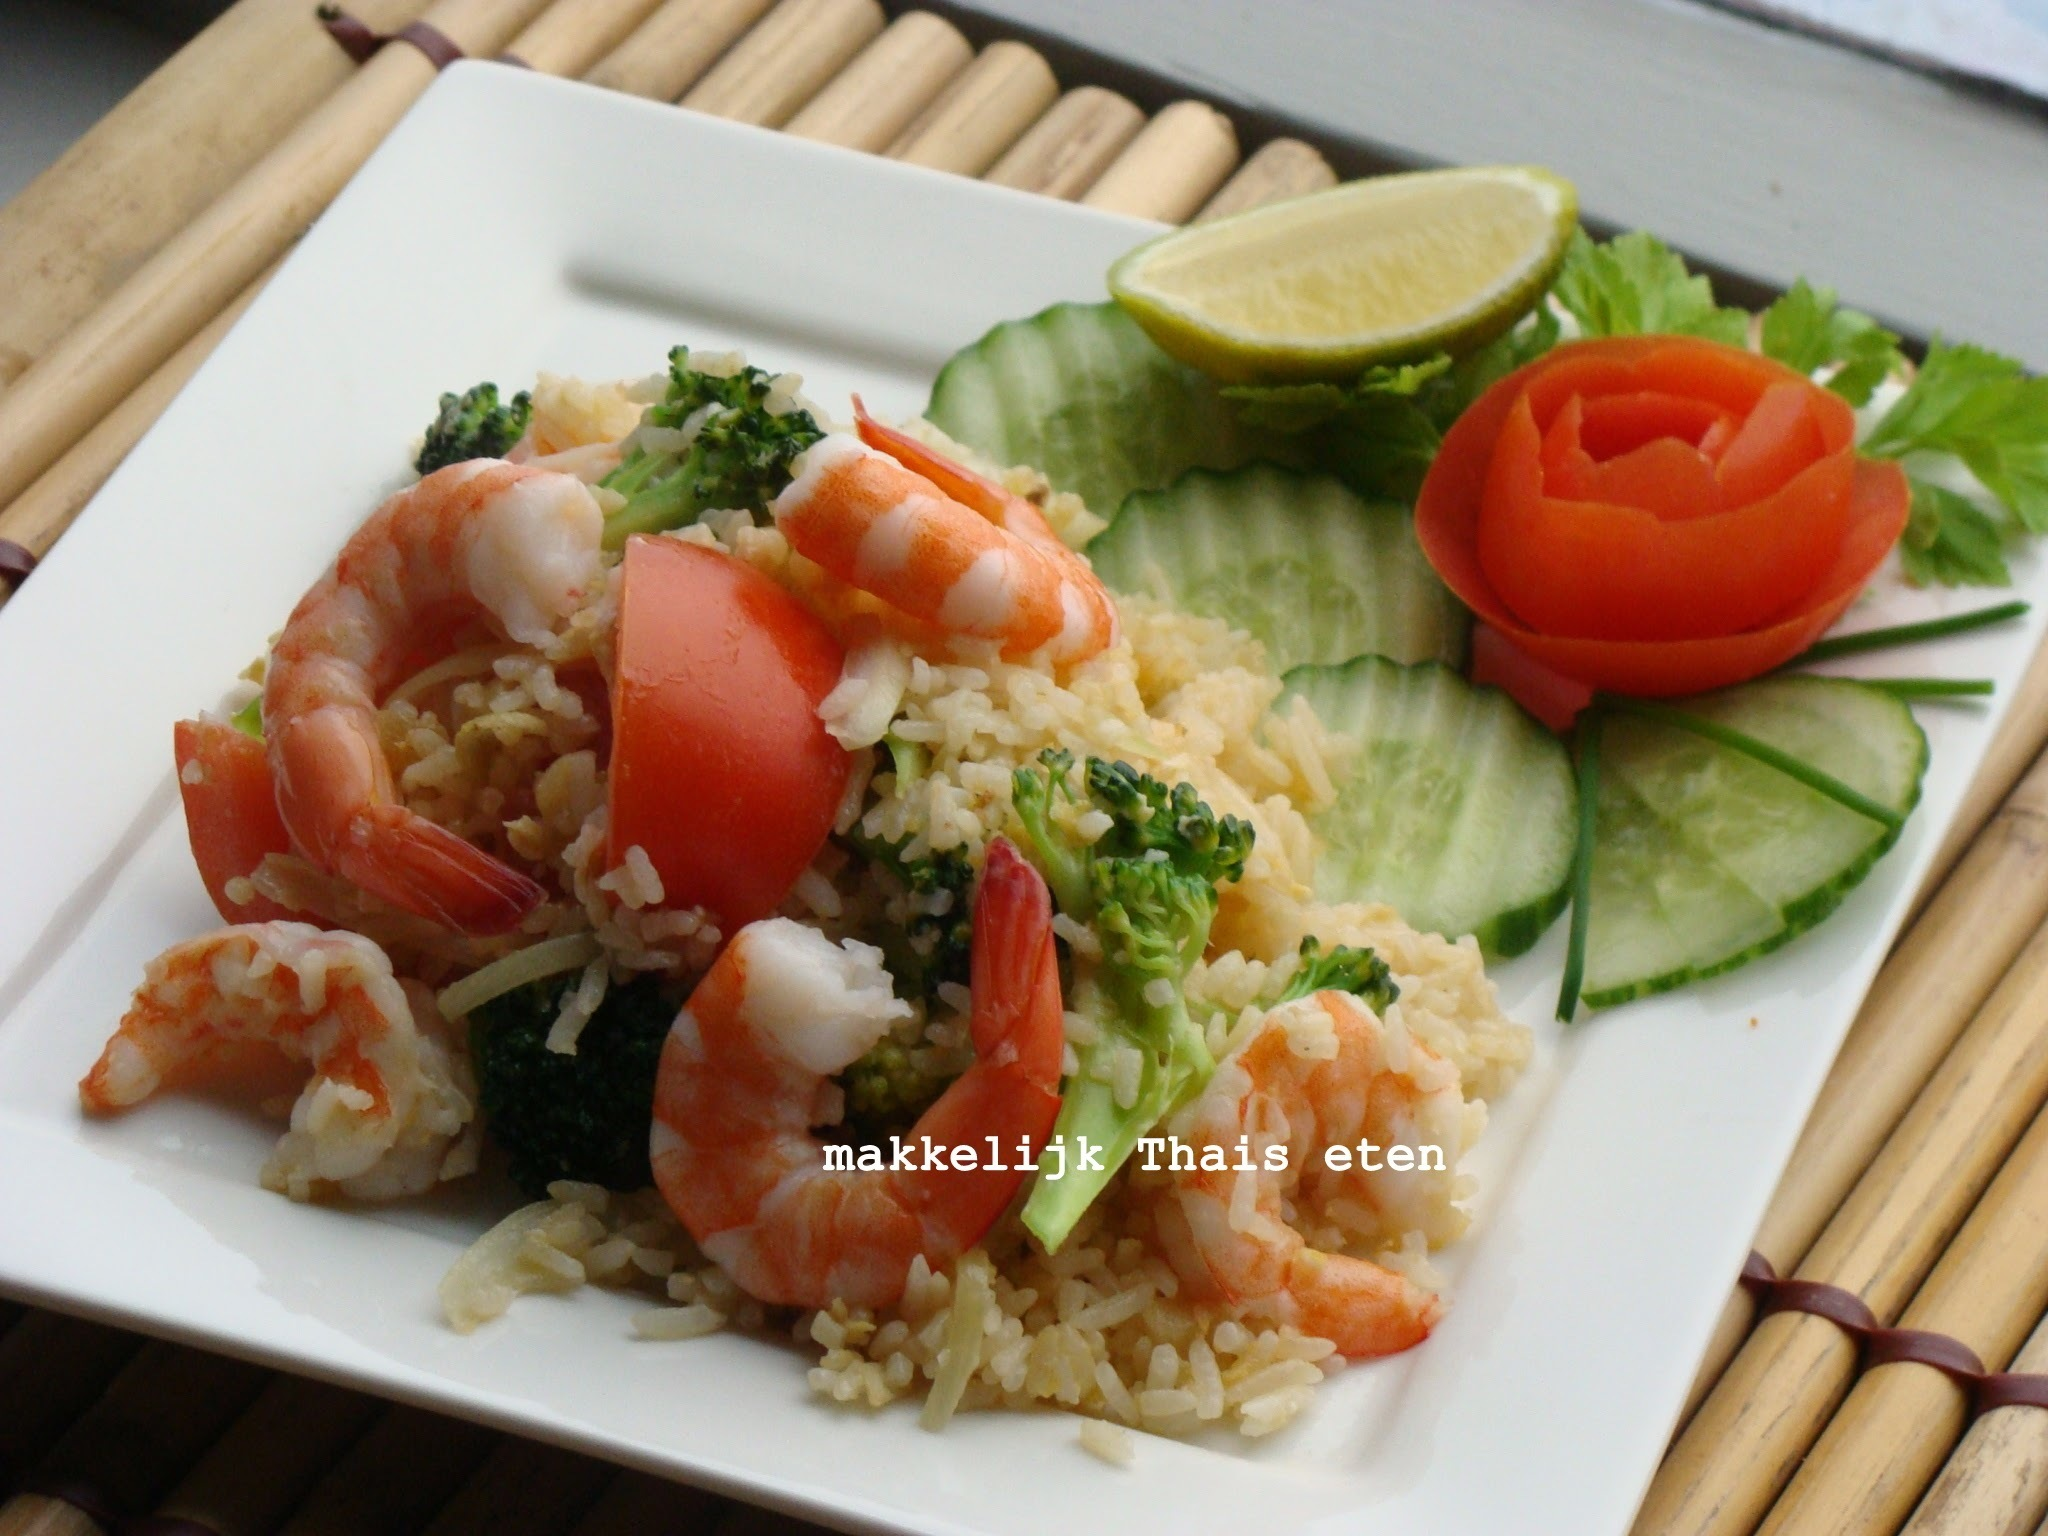 RECEPT: Thaise roerbak rijst met garnalen en ei/ Thai Egg Fried Rice with Prawn ข้าวผัดกุ้ง